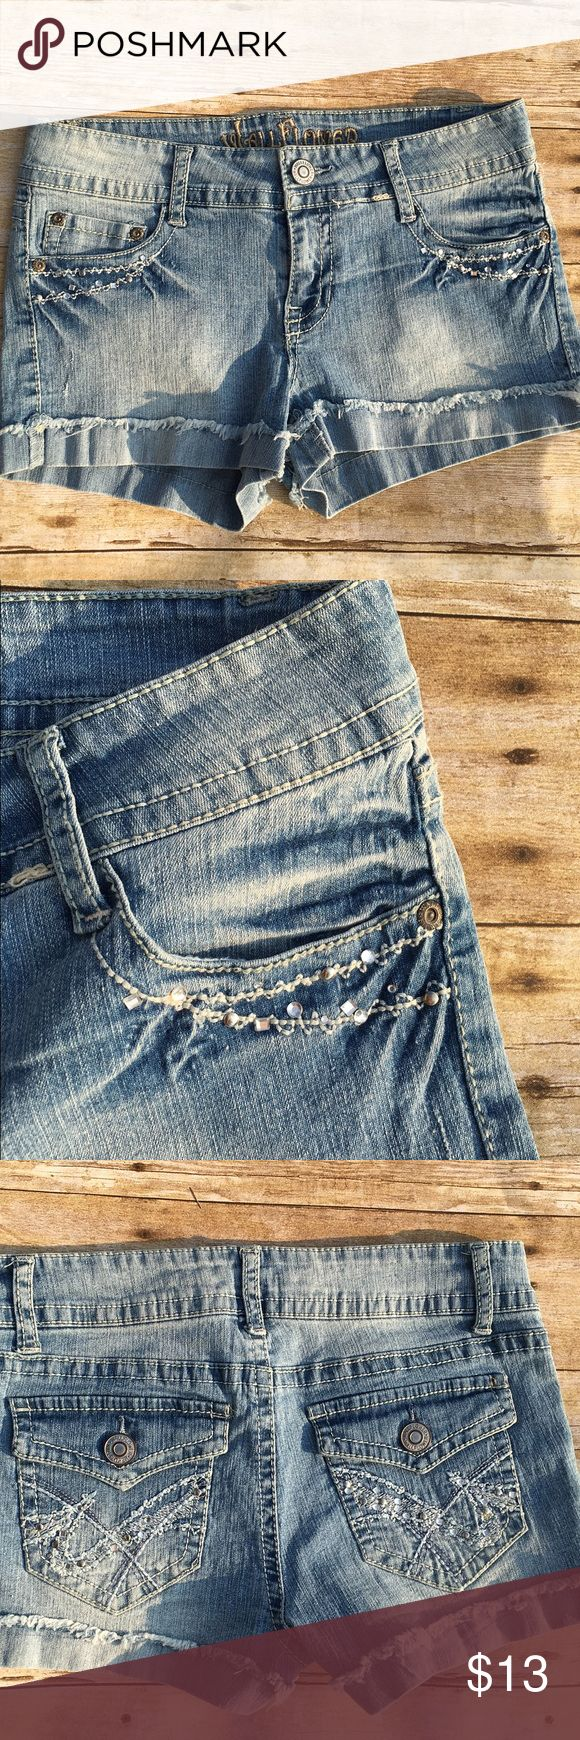 ❗️SALE❗️Jean Shorts Wallflower Jean Shorts with cute studs and rhinestone design on front and back pockets   Pre-owned, excellent condition  Waist: 28        Seat: 32 inches        Front Rise: 7 1/2 inches Wallflower Shorts Jean Shorts